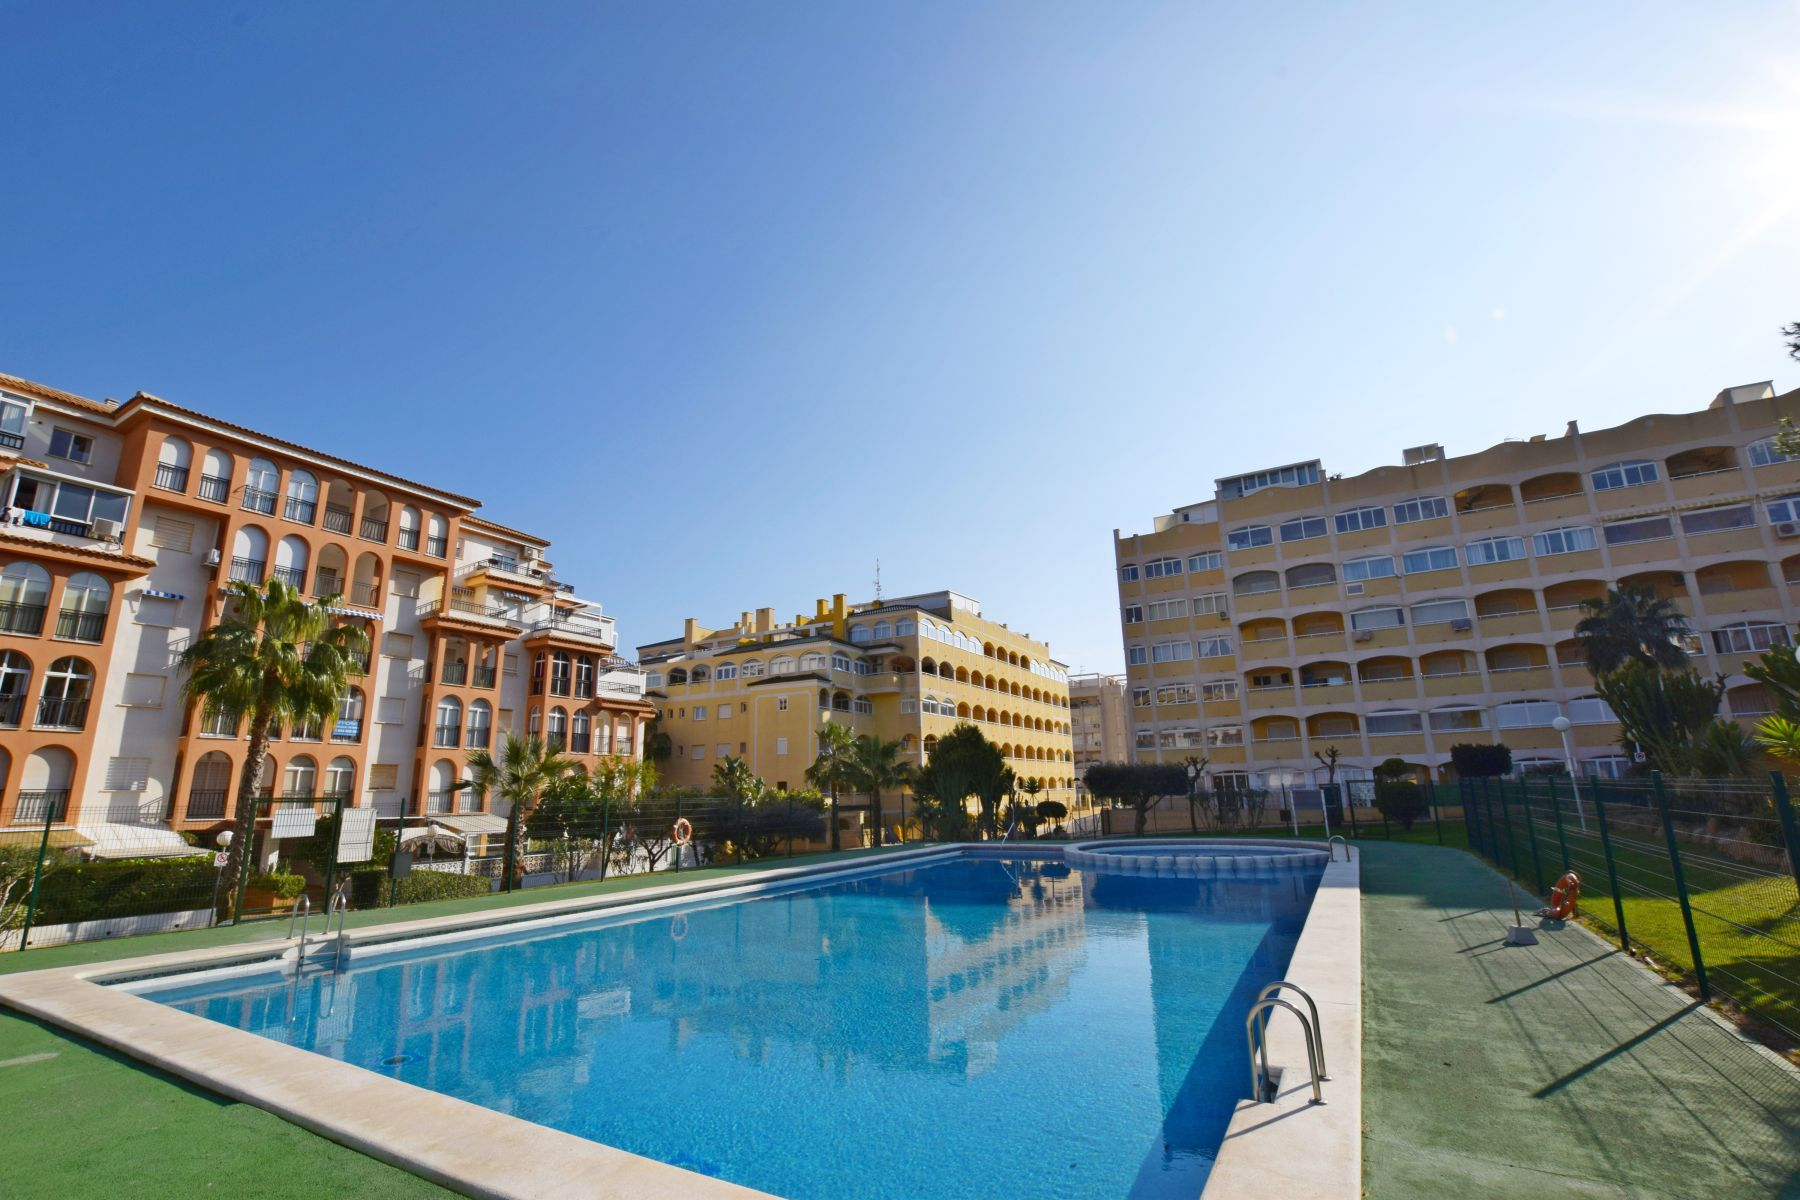 Apartments For Sale with 2 Bedrooms and Swimming Pool Near the Beach